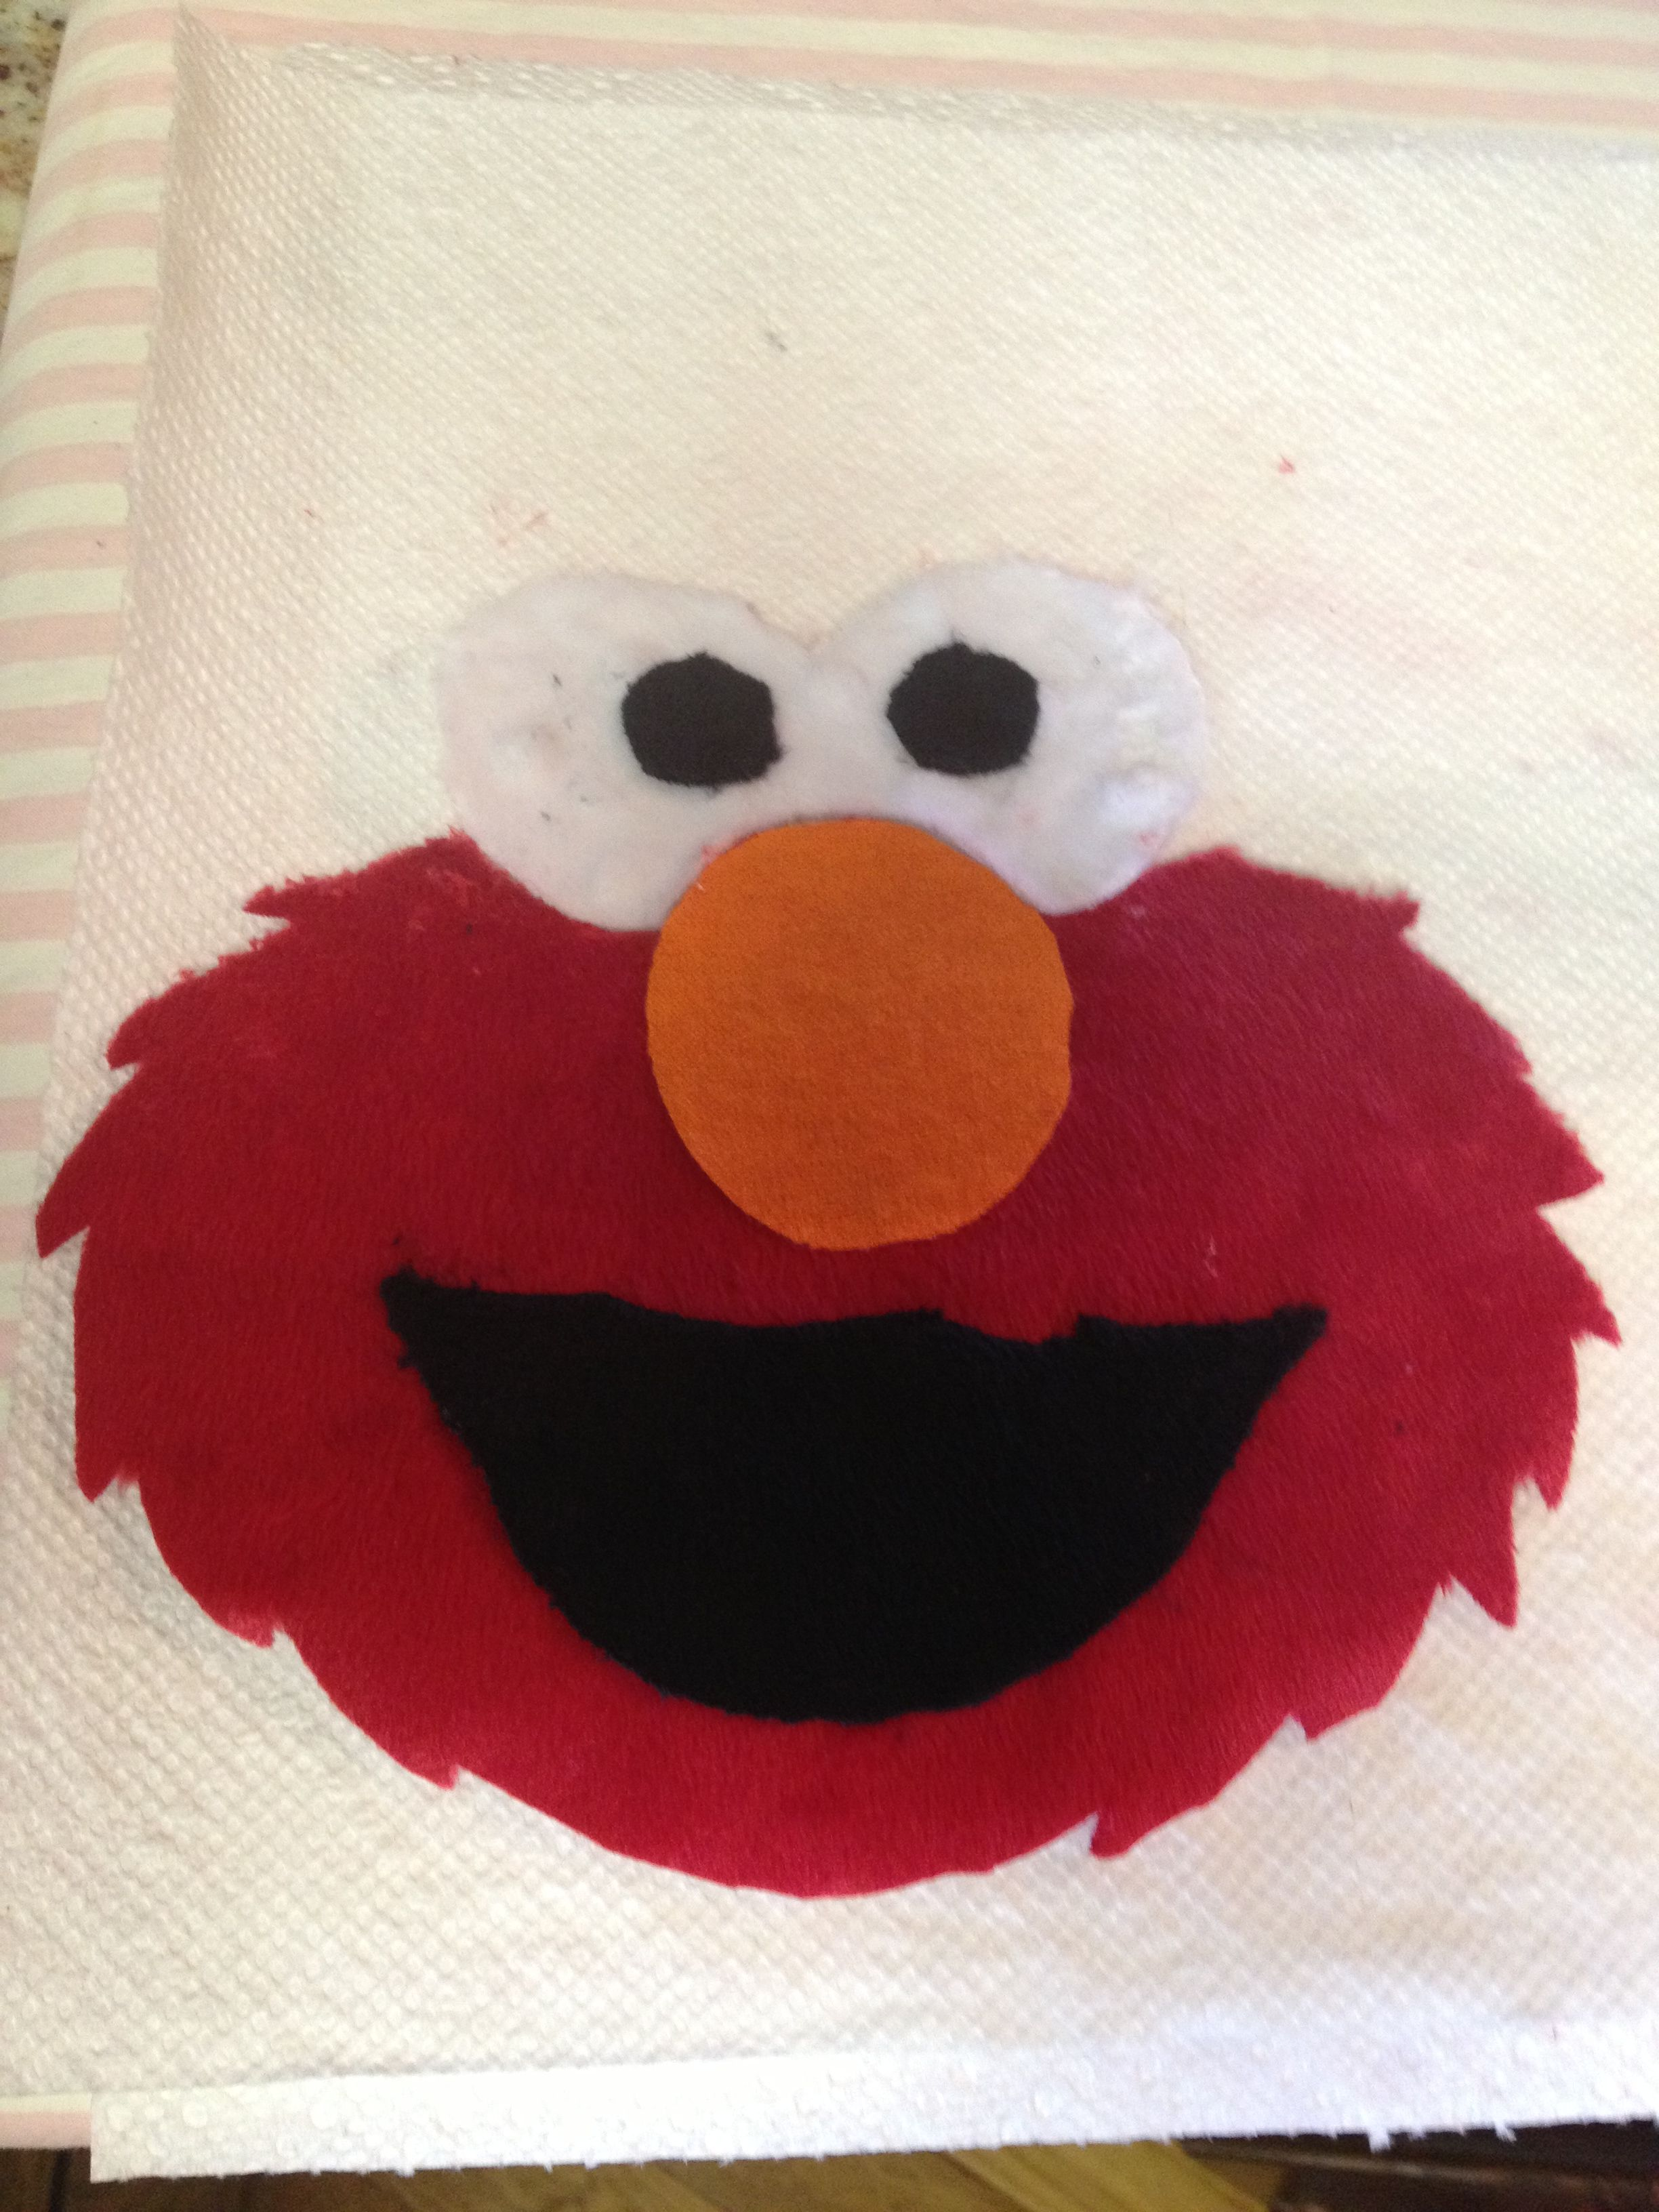 Elmo appliqu minky fabric arts and crafts pinterest for Elmo arts and crafts